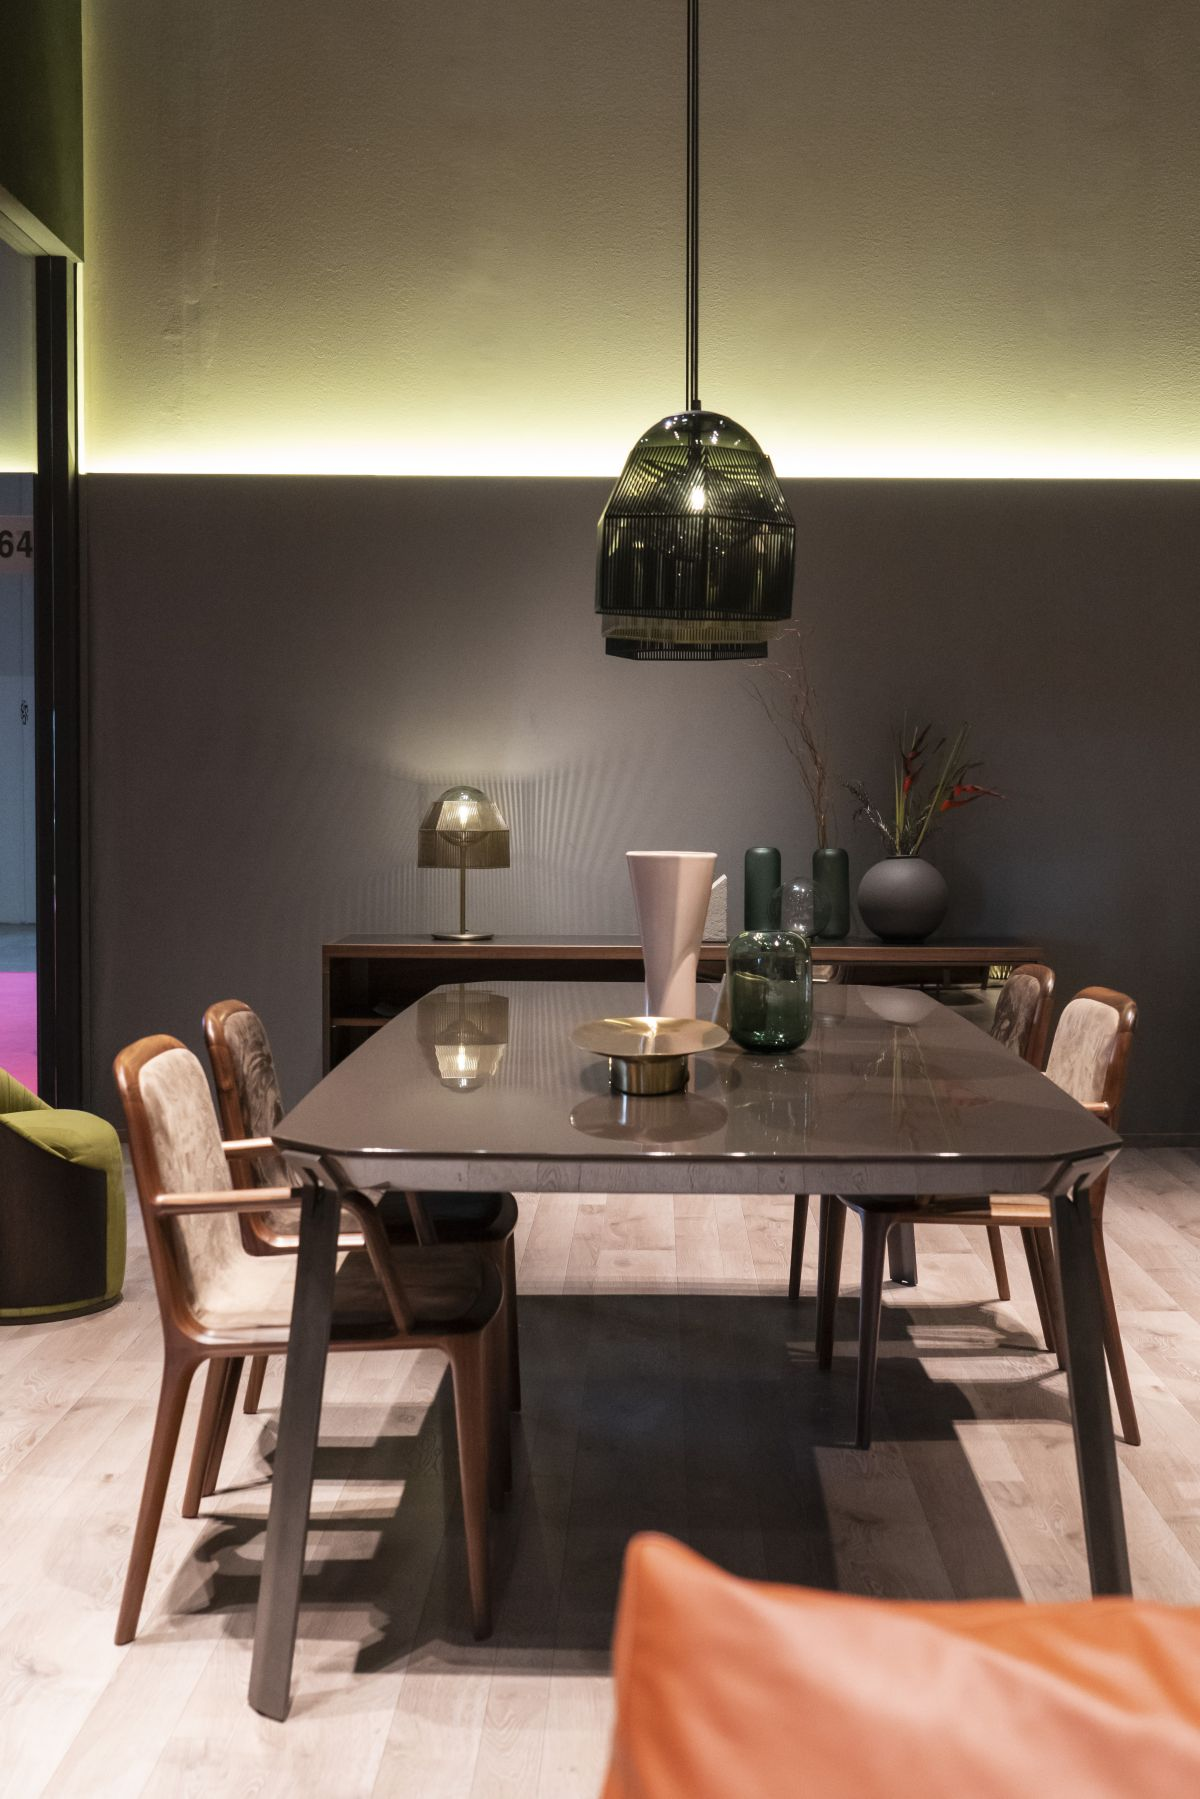 Black dining table design - How To Design And Decorate The Space Around Your Dining Table